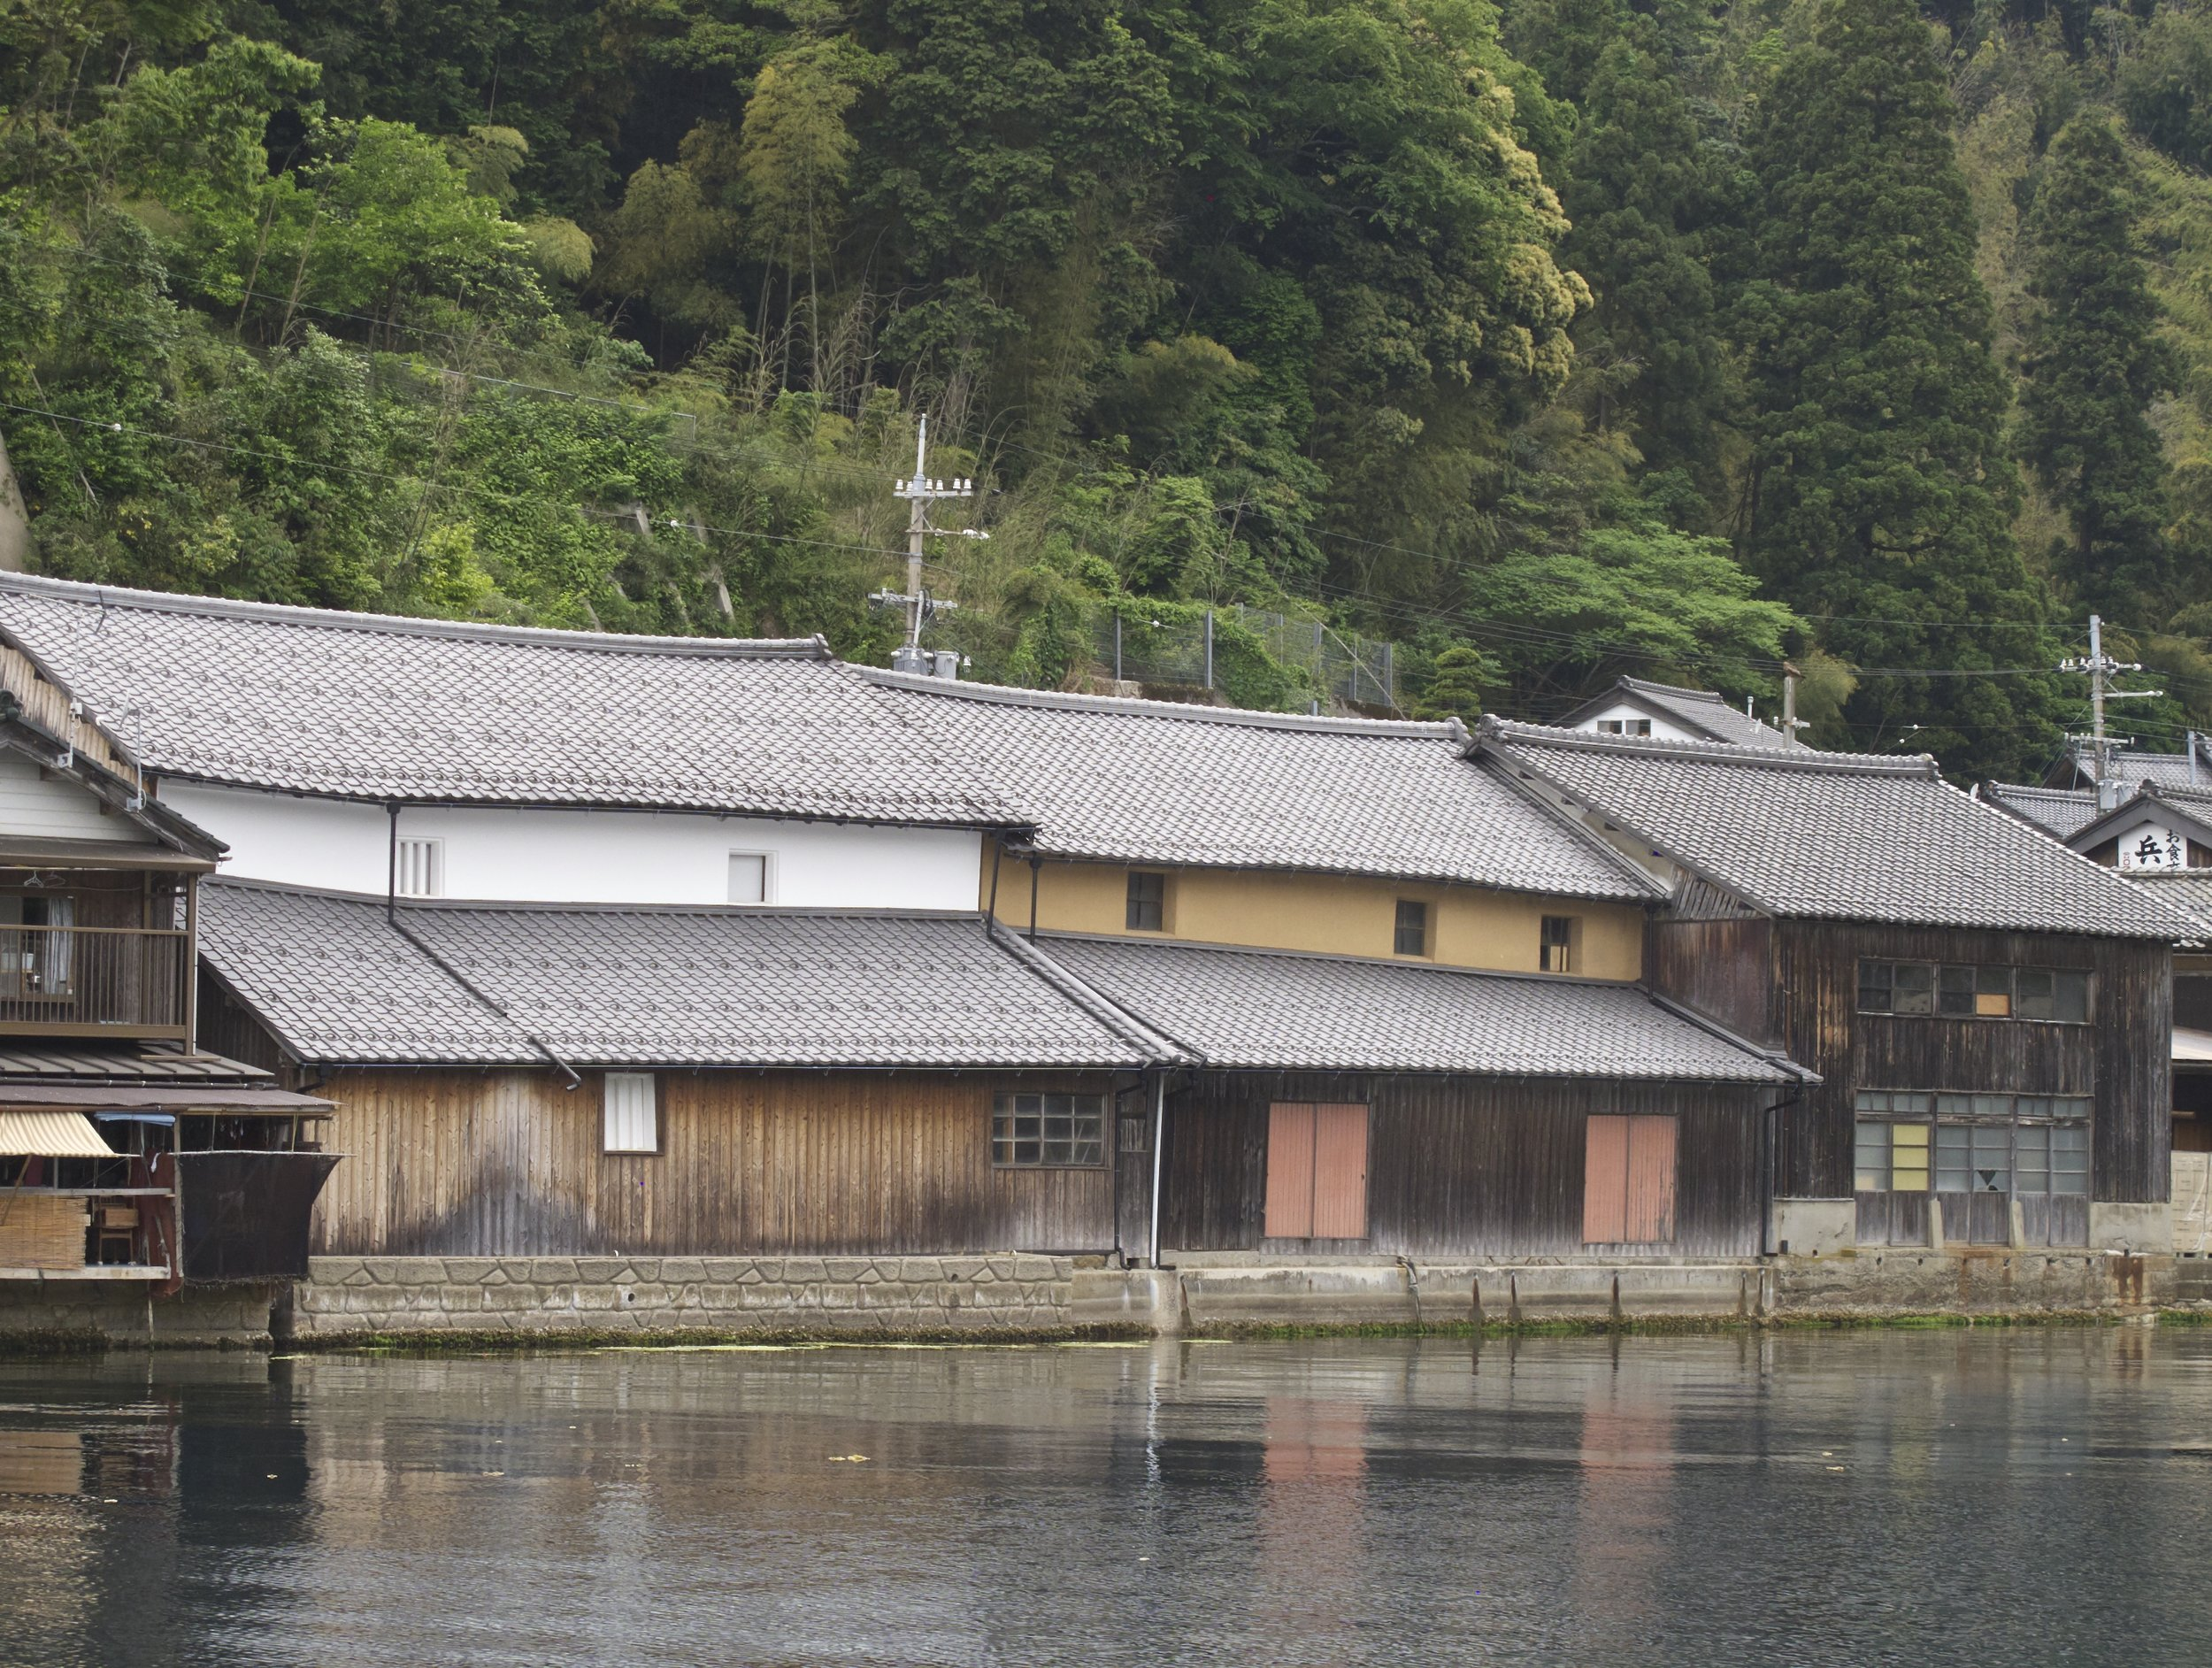 All buildings in Ine are edged along the bay, including the Mukai Shuzo Sake Brewery pictured here. Founded in 1754, the brewery is famous because its master brewer Kuniko Mukai is a woman and also because she makes a unique rose-colored sake called Ine Mankai, which has a sweet-acidic flavor that goes perfectly with the rich seafood caught in the bay.